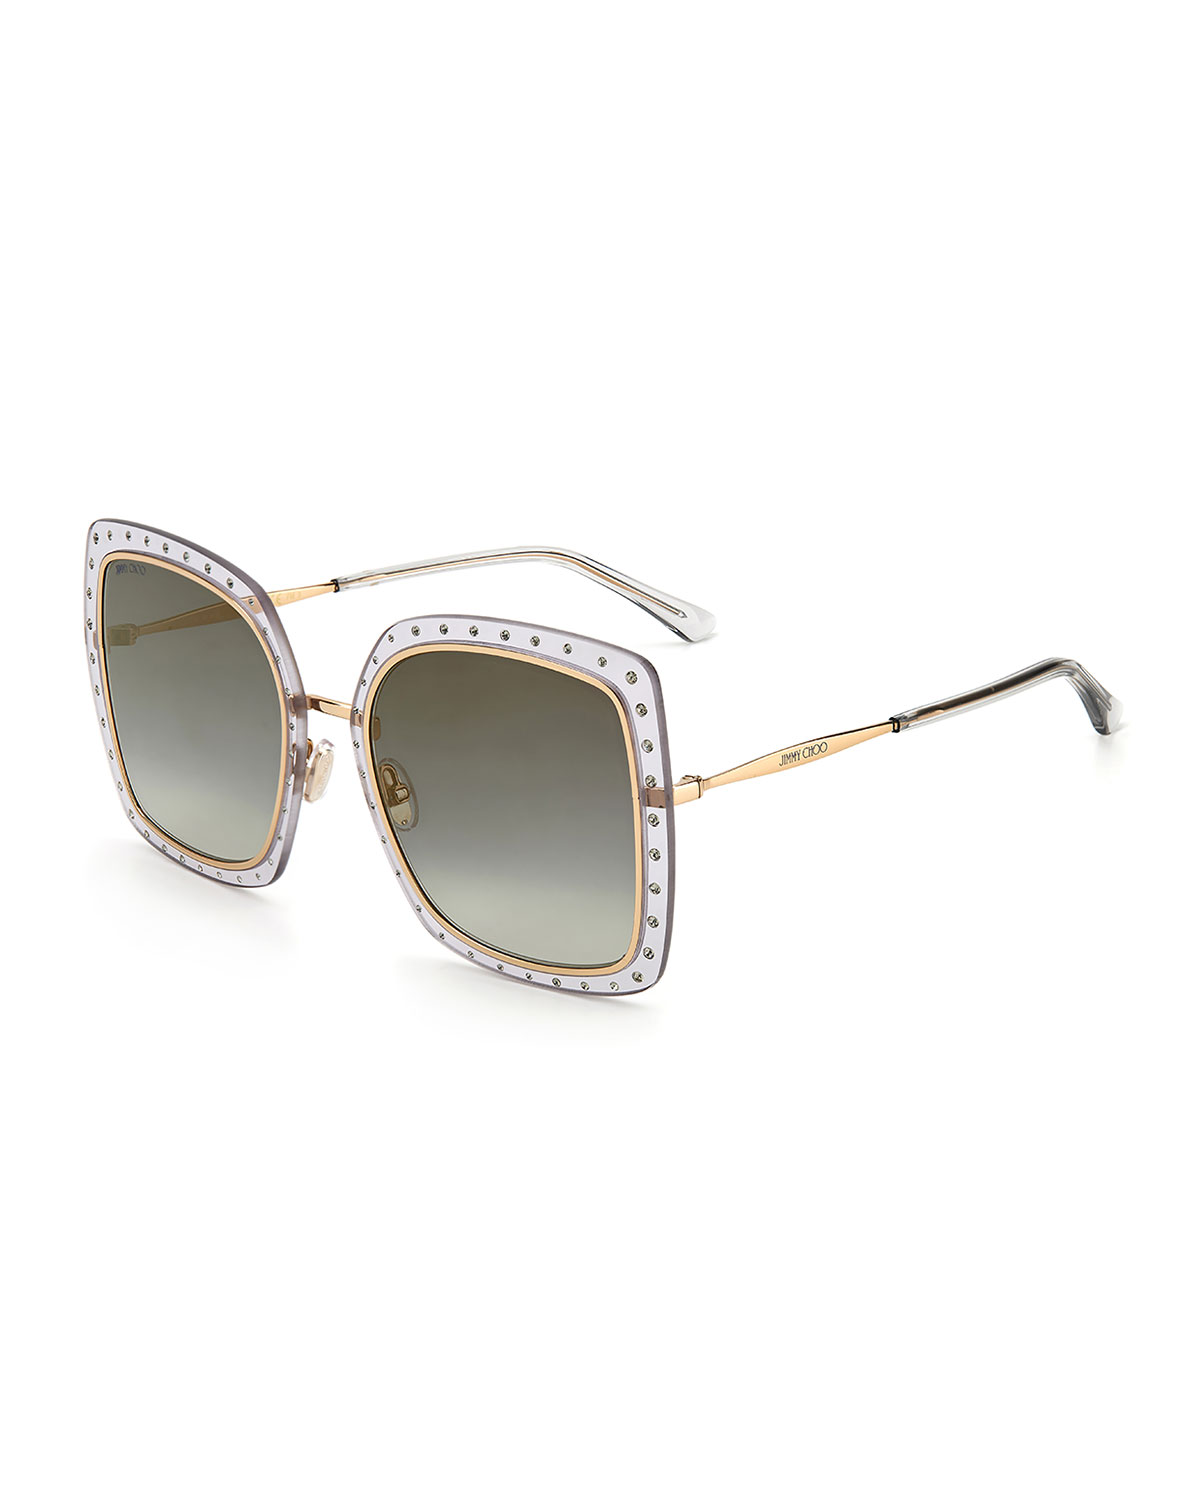 Jimmy Choo DANY OVERSIZED SQUARE STAINLESS STEEL/ACETATE SUNGLASSES